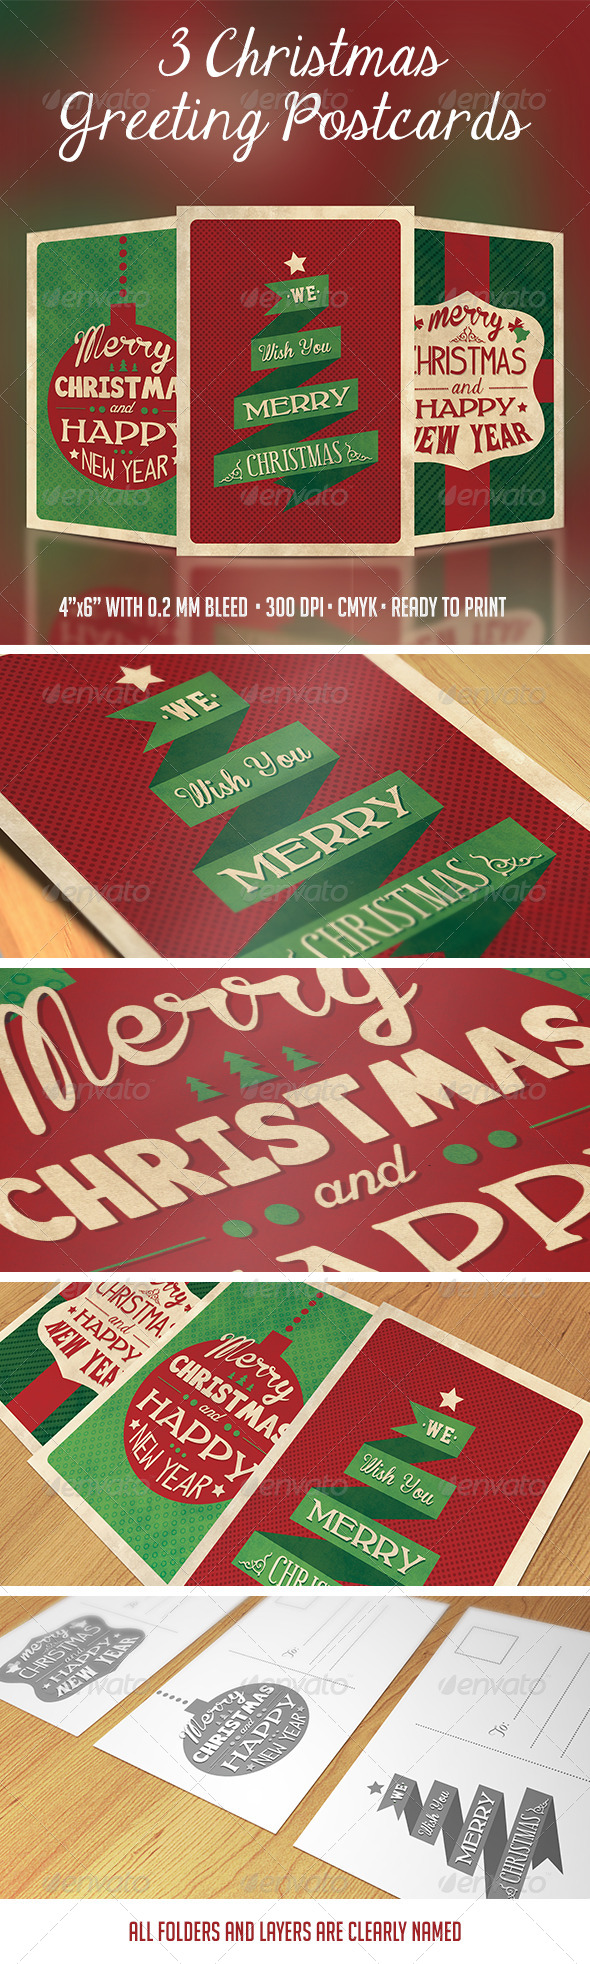 3 Christmas Greeting Postcards - Holidays Events